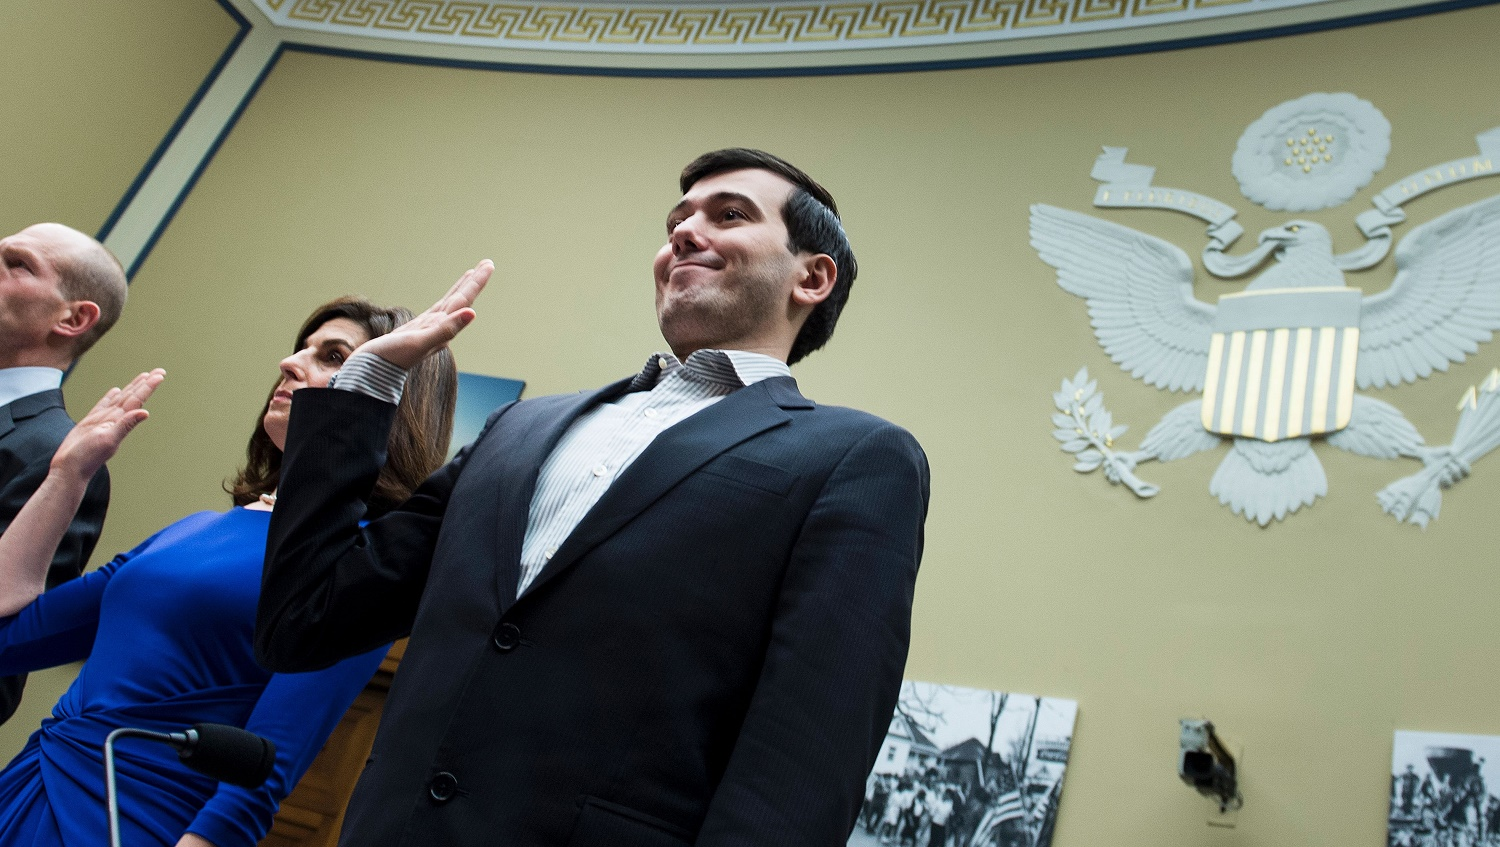 Entrepreneur and pharmaceutical executive Martin Shkreli (R) is sworn in with others during a hearing of the House Oversight and Government Reform Committee on Capitol Hill February 4, 2016 in Washington, DC. Martin Shkreli, the controversial former pharmaceuticals boss and hedge fund manager indicted on securities fraud charges, has been subpoenaed to appear at a hearing of a House of Representatives committee on oversight and government reform looking at the prescription drug market. / AFP / Brendan Smialowski        (Photo credit should read BRENDAN SMIALOWSKI/AFP/Getty Images)